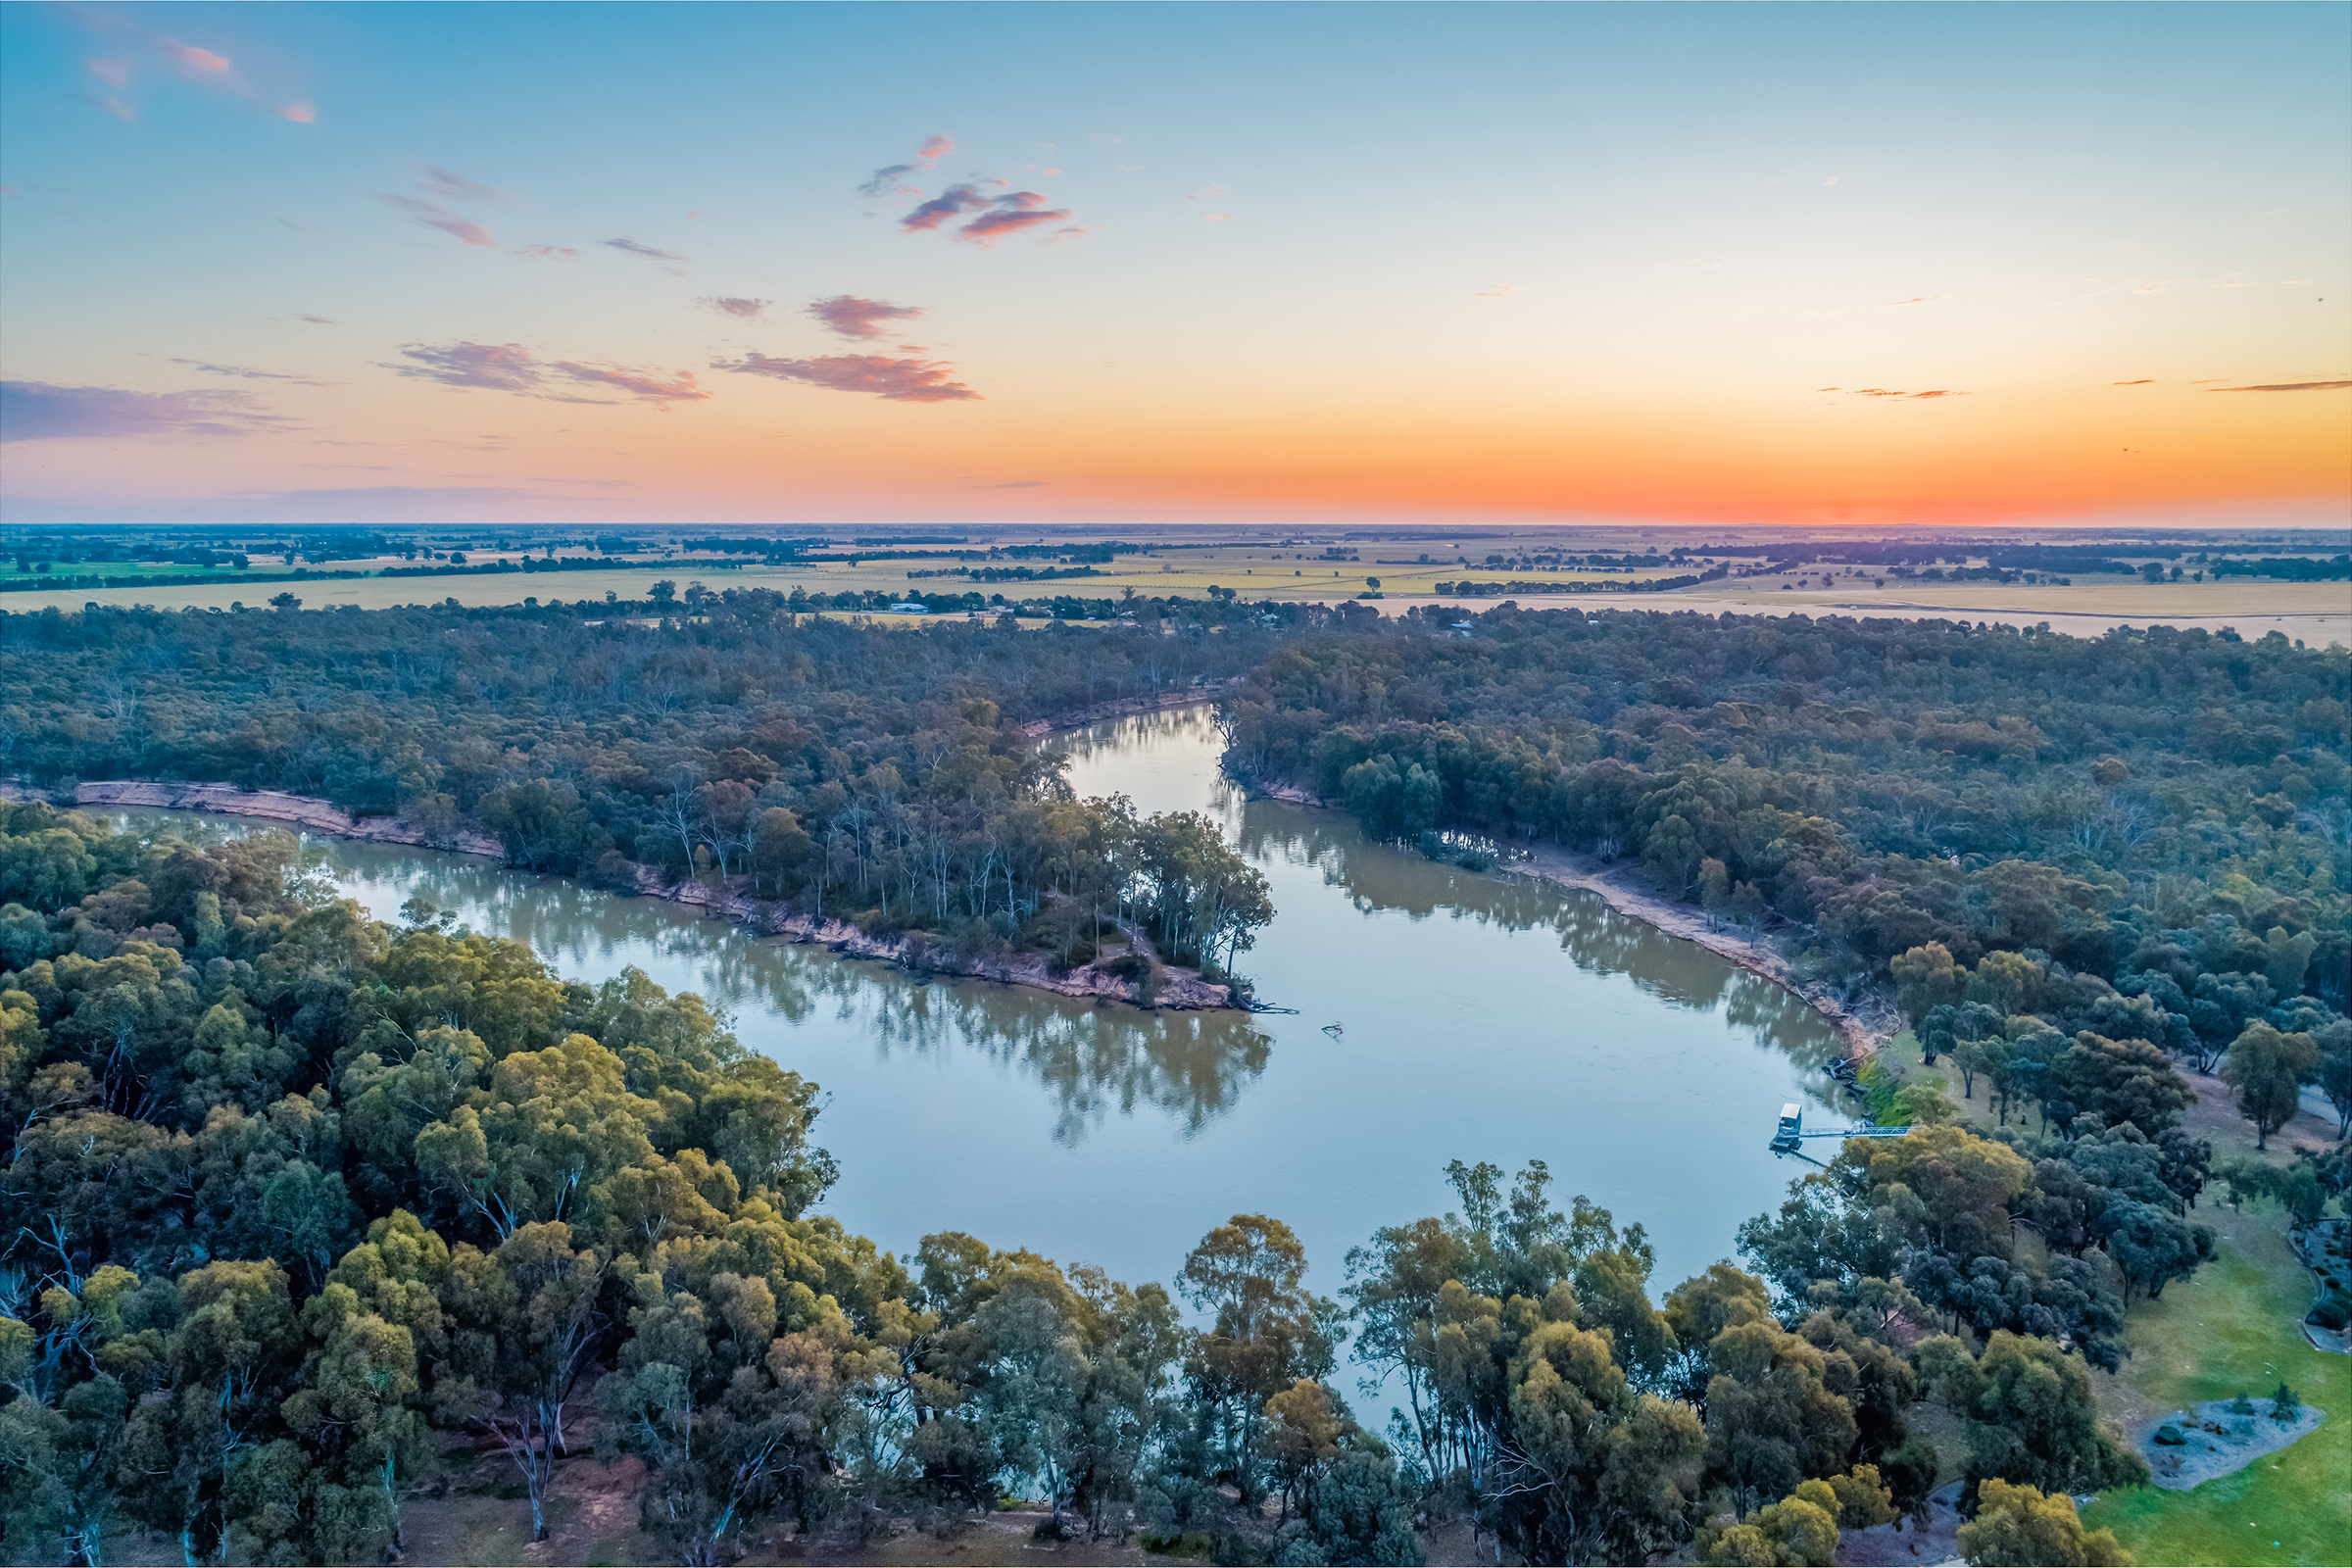 Ariel view of the Murray-Darling Basin